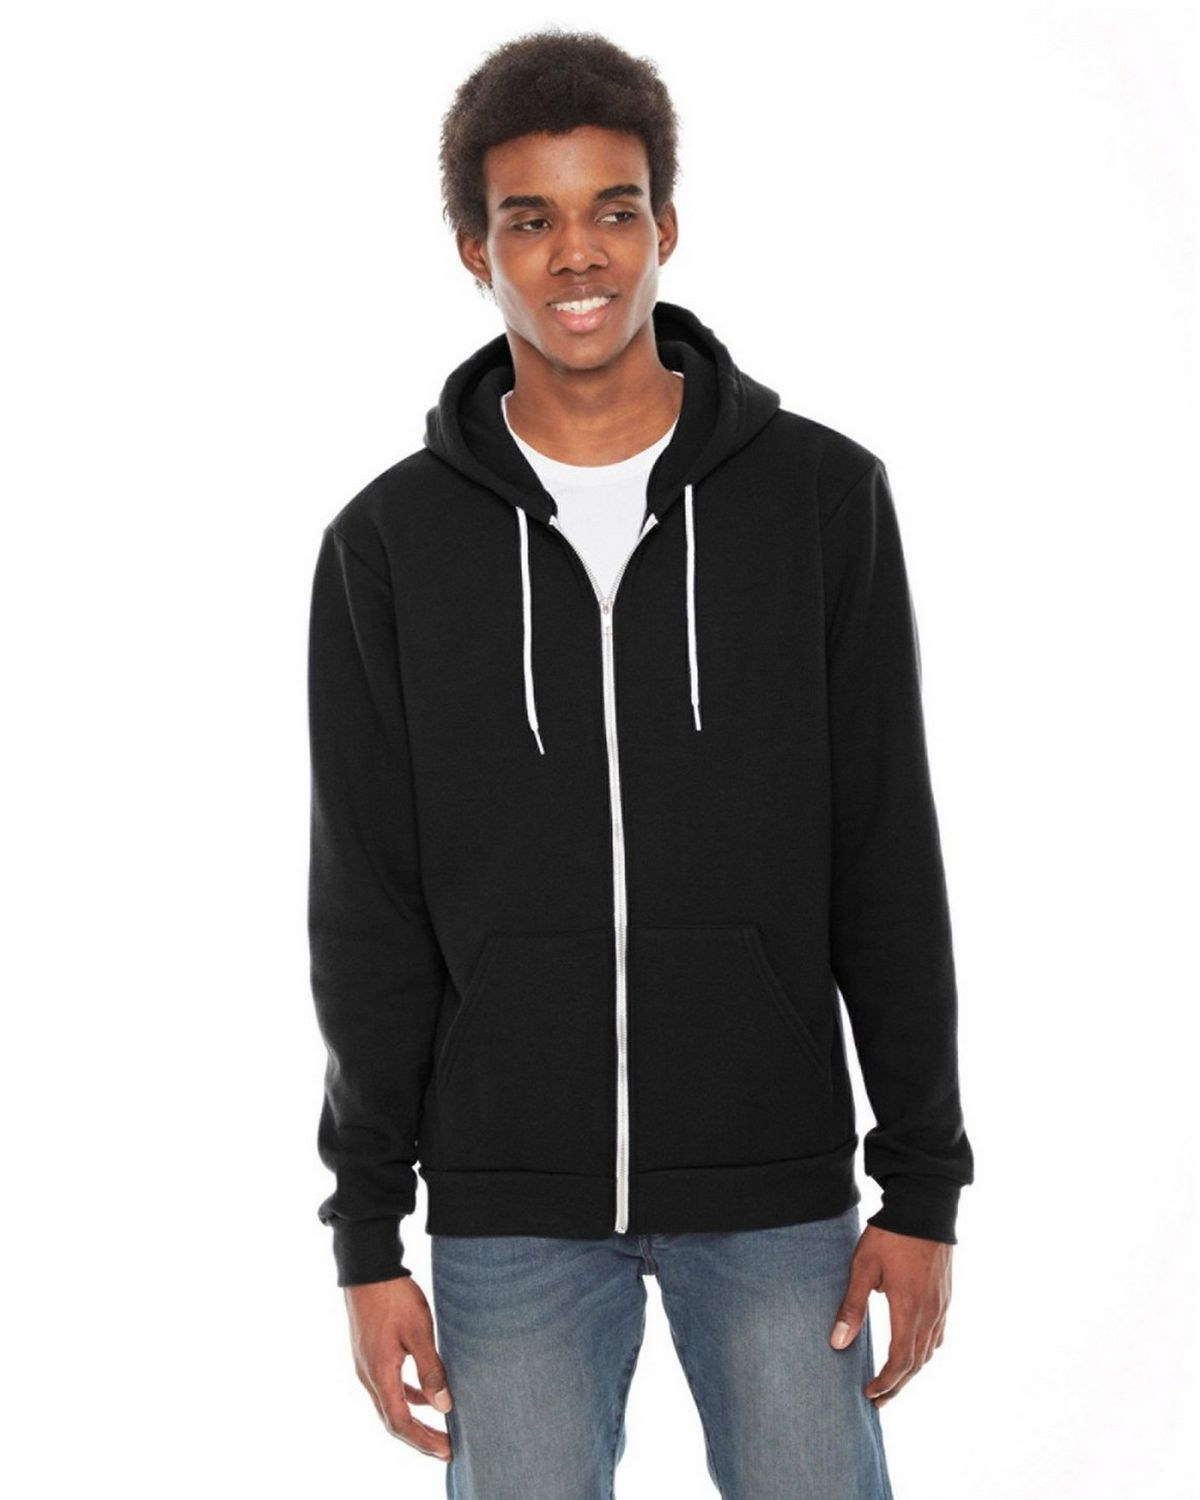 American Apparel F497 Unisex Flex Fleece Hoodie - Black - XL F497